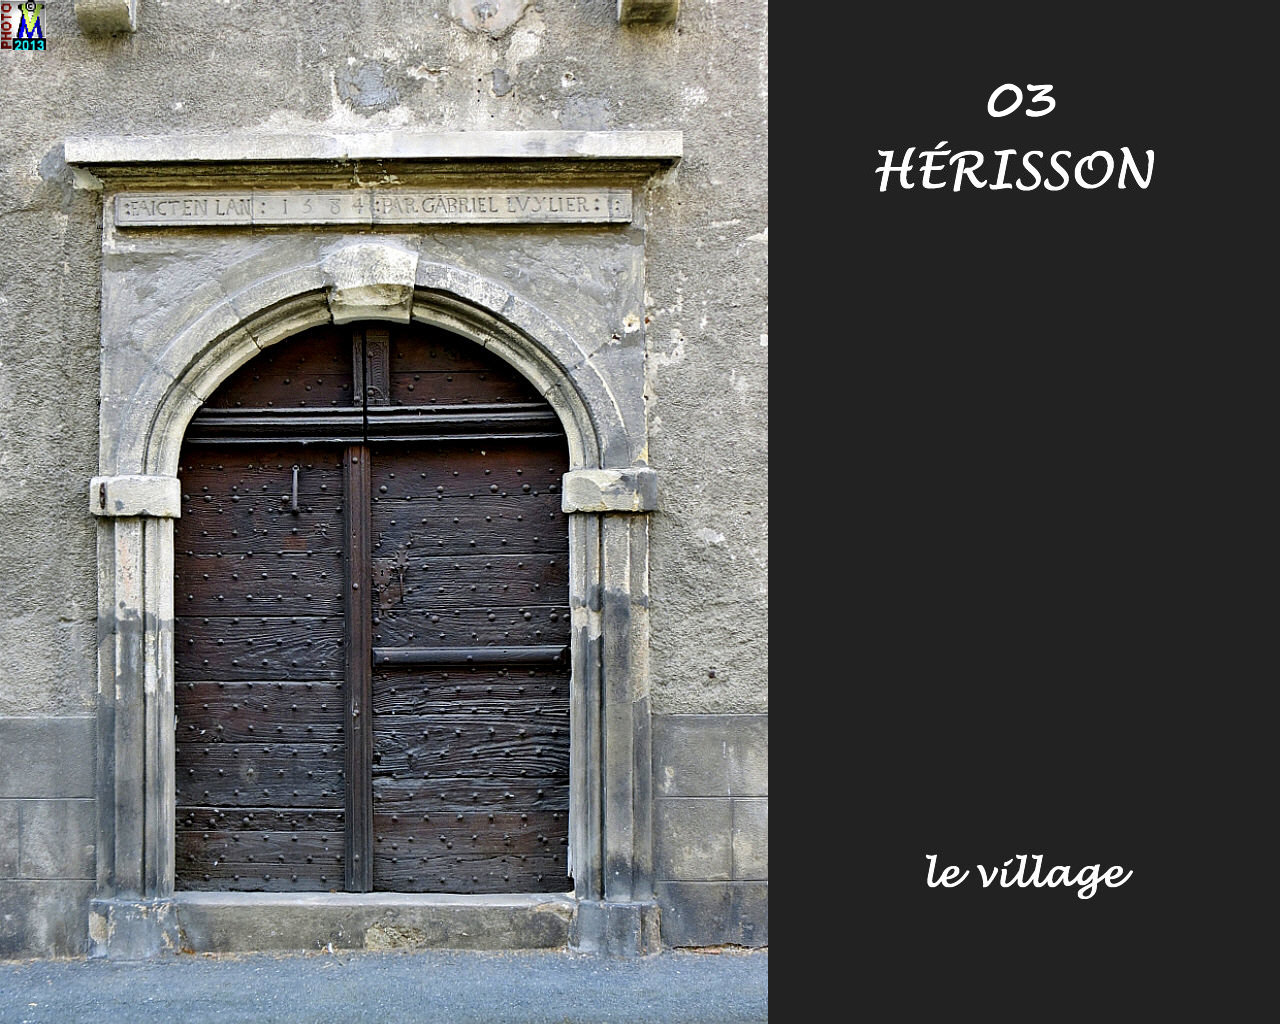 03HERISSON_village_110.jpg